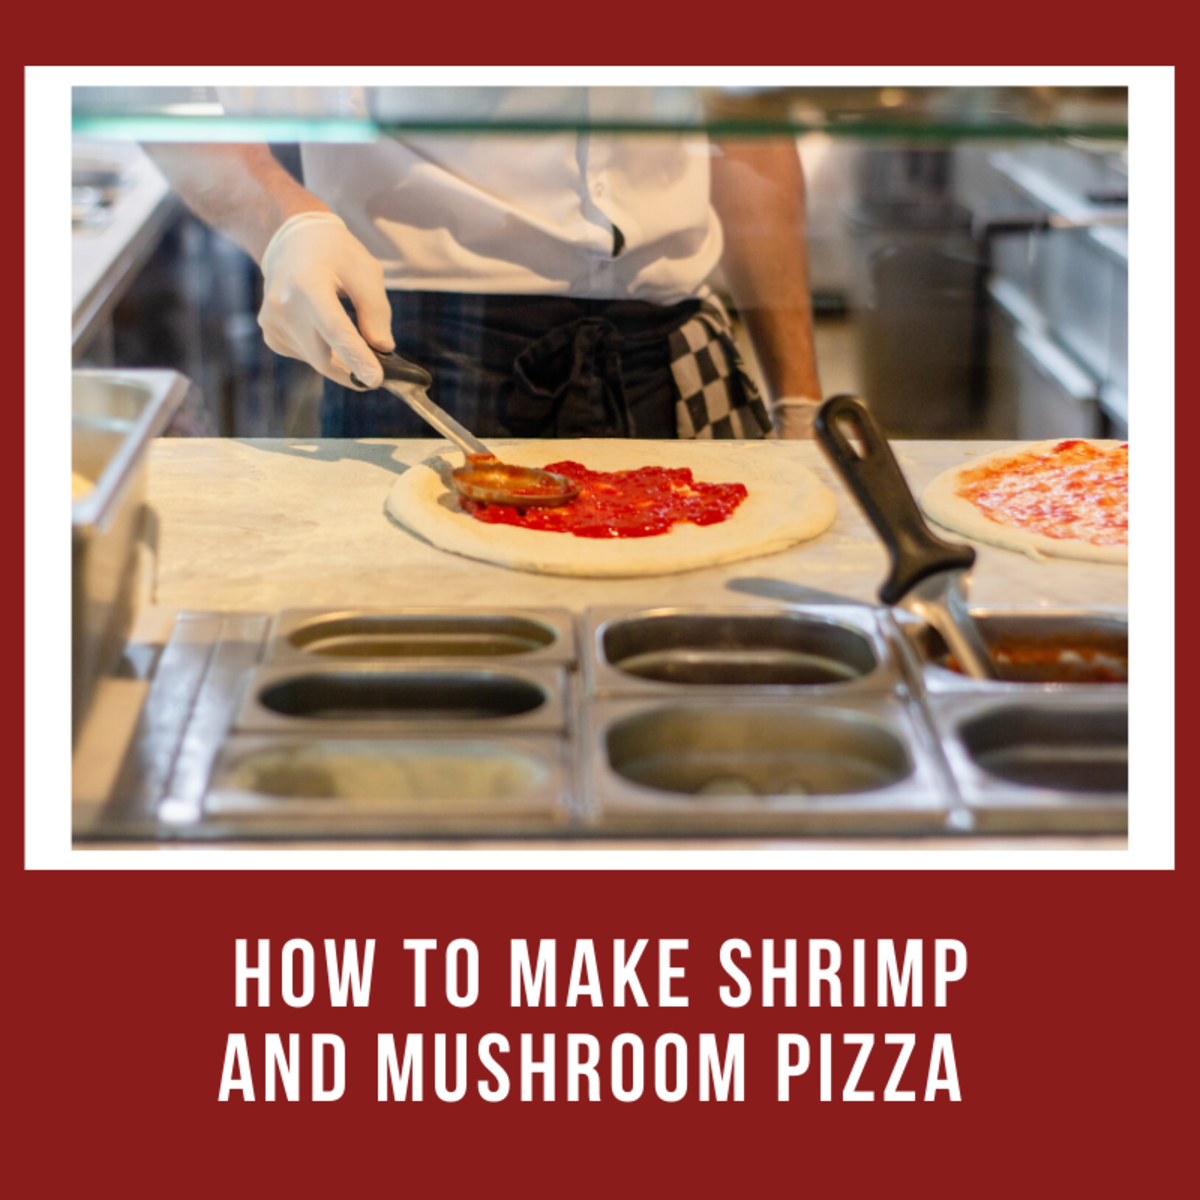 This delicious shrimp and mushroom pizza is great to share!